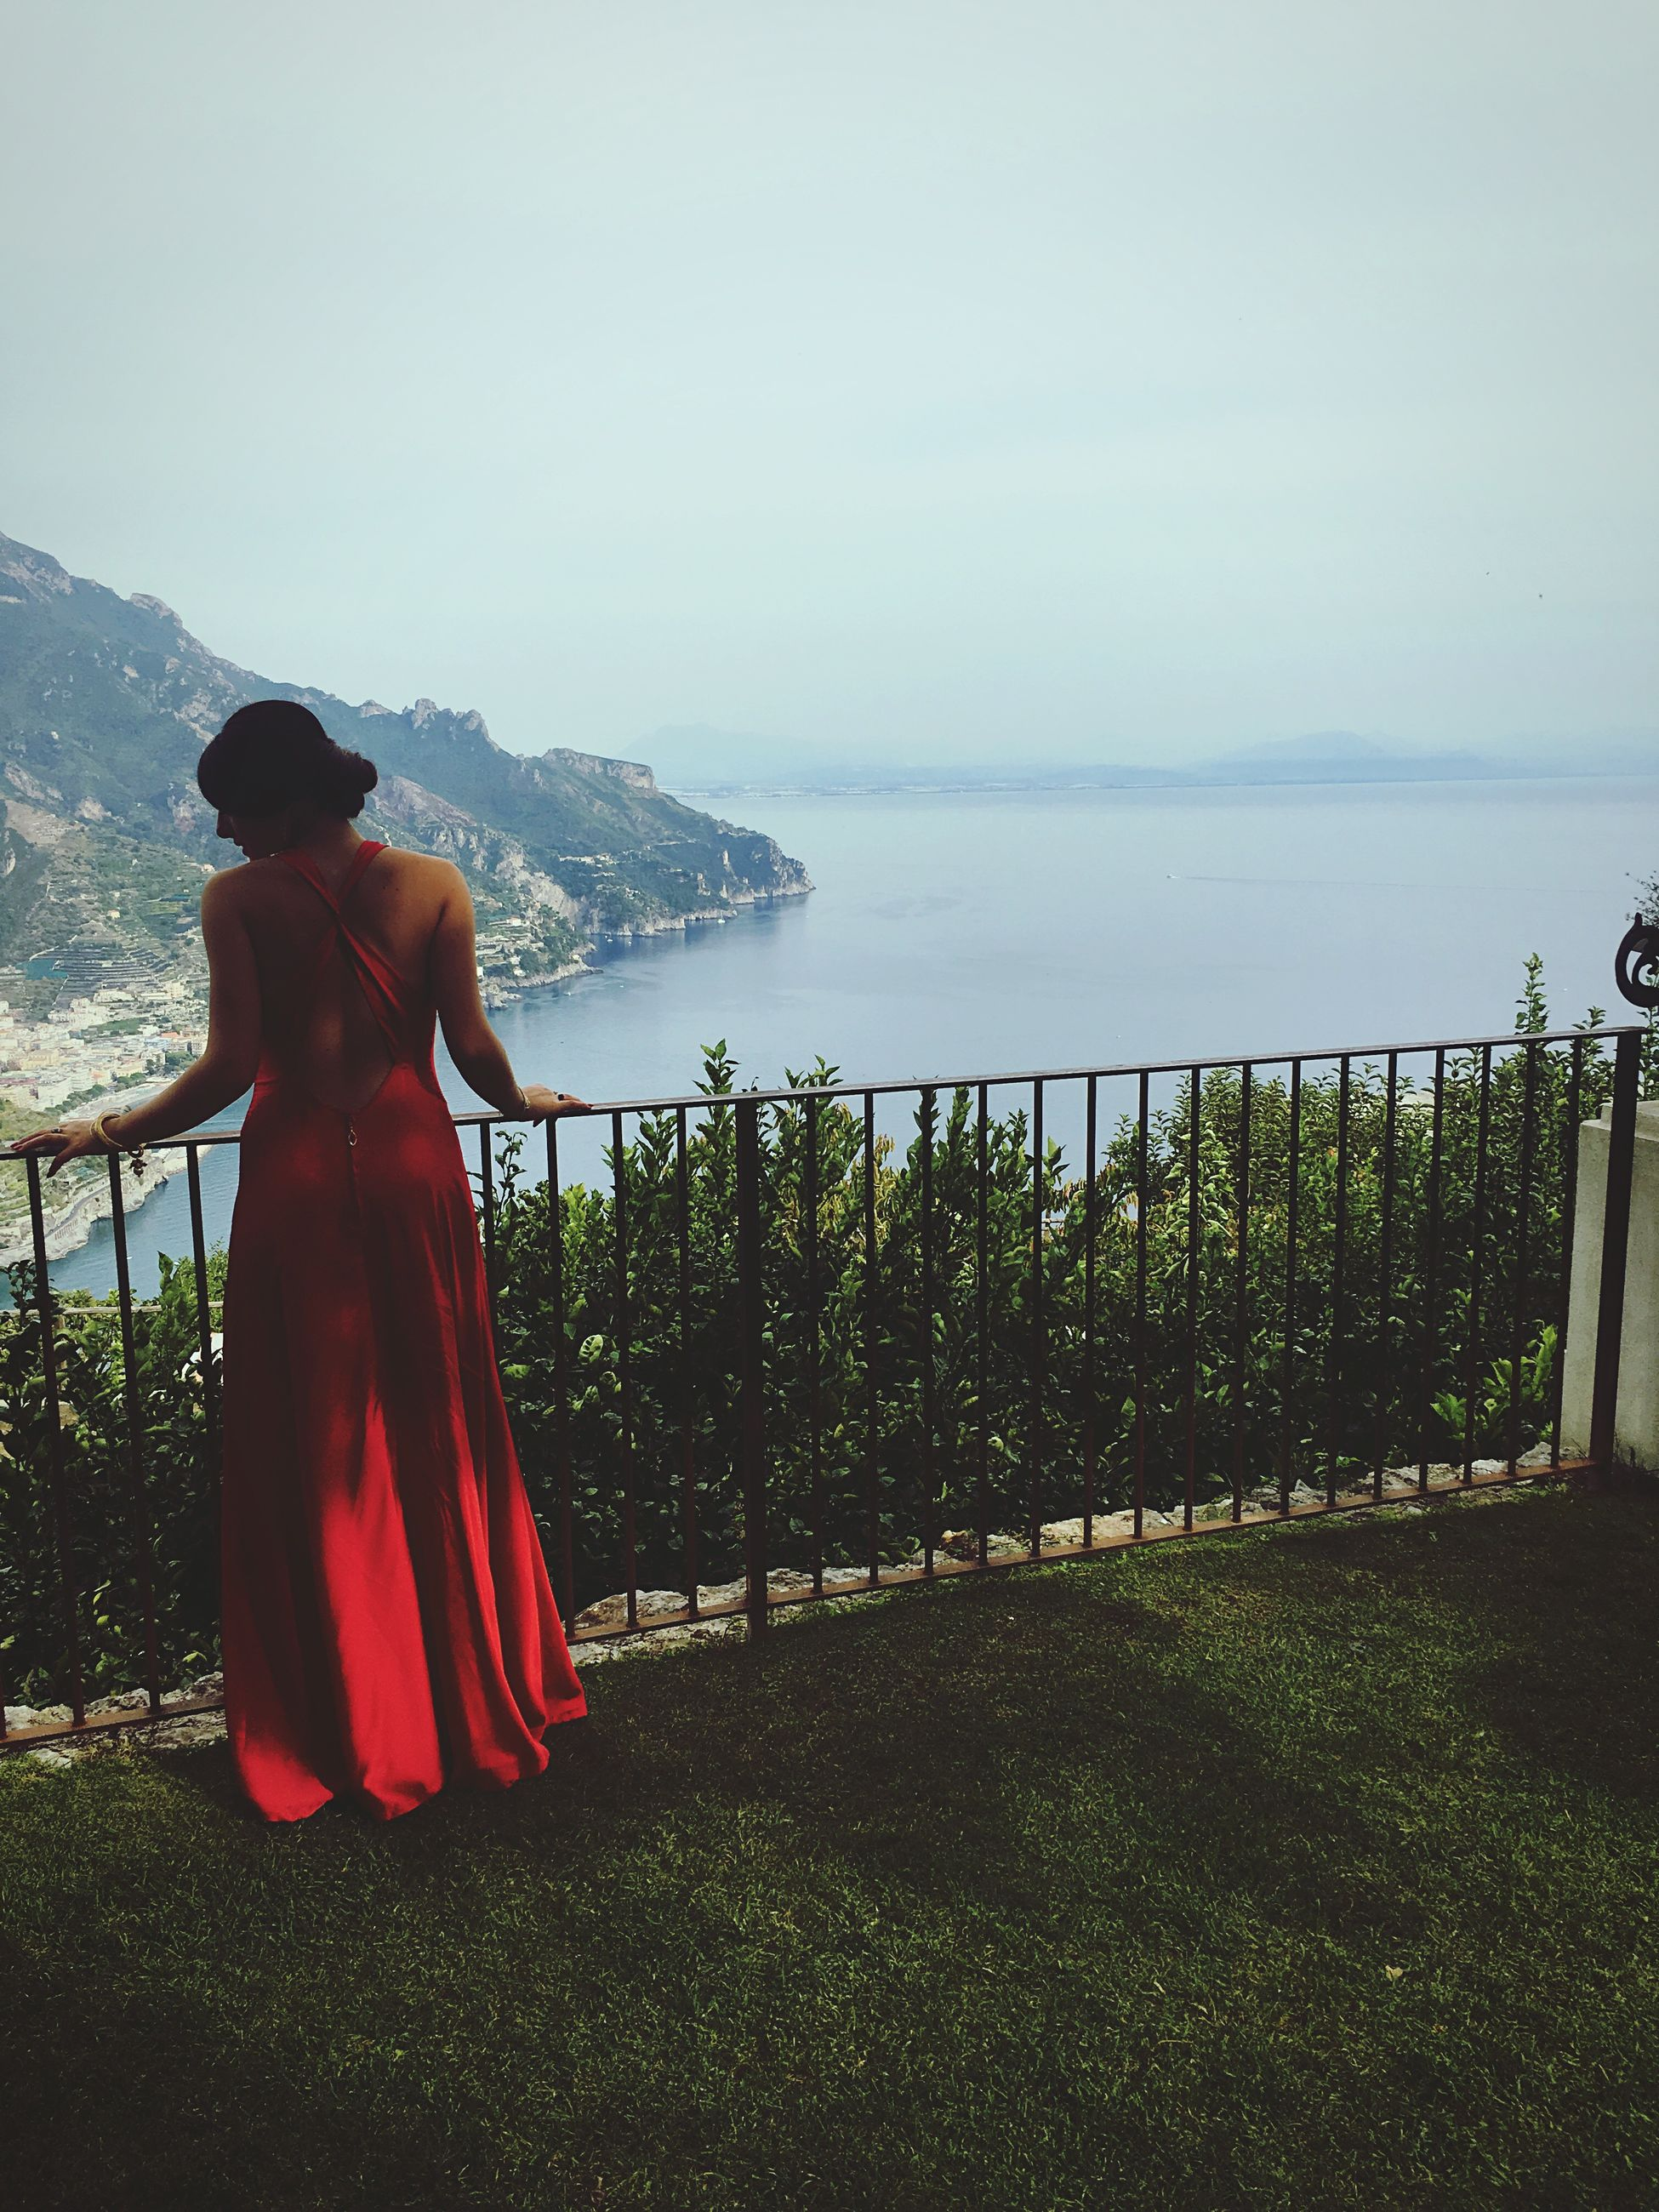 water, rear view, full length, sea, standing, tranquil scene, relaxation, looking at view, scenics, leisure activity, tranquility, lake, vacations, person, beauty in nature, coastline, casual clothing, day, getting away from it all, tourism, summer, nature, cliff, outdoors, carefree, weekend activities, non-urban scene